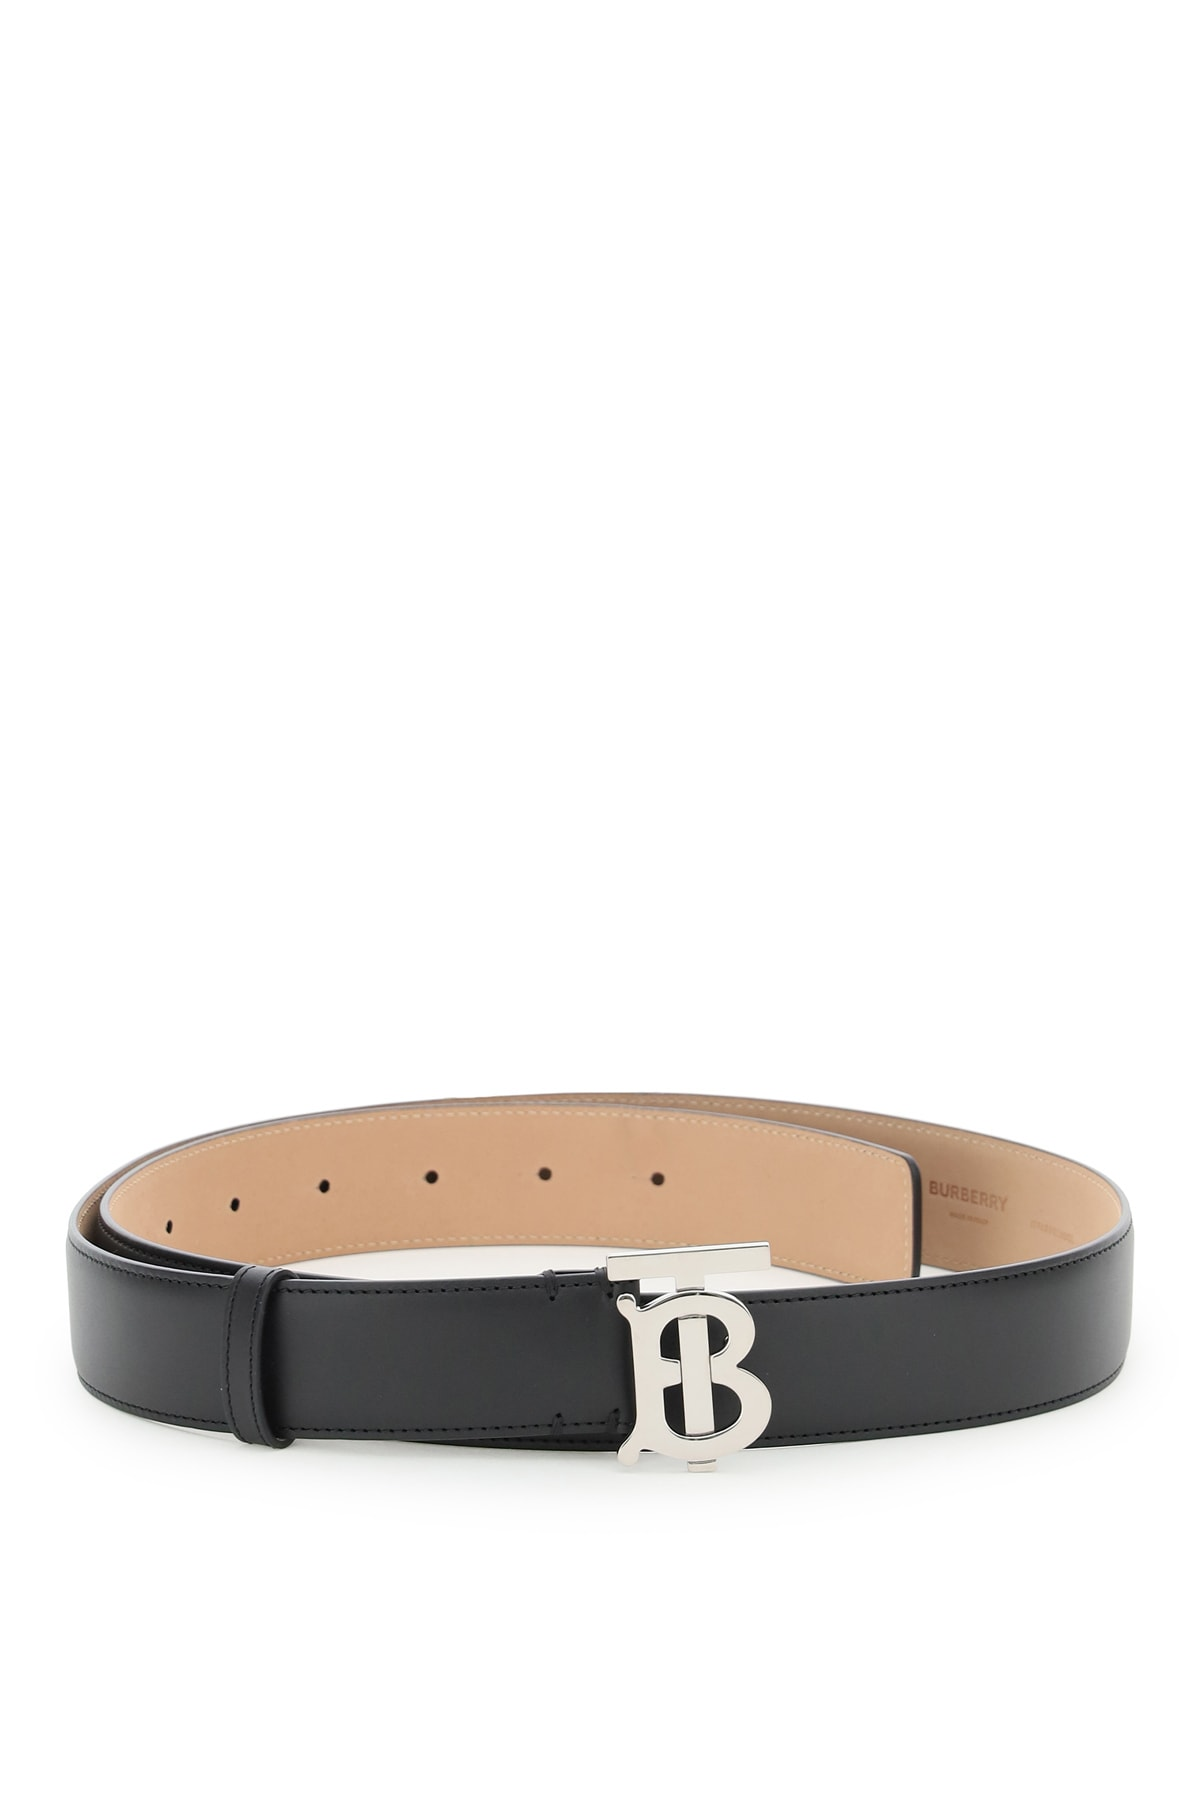 Burberry TB BELT 35